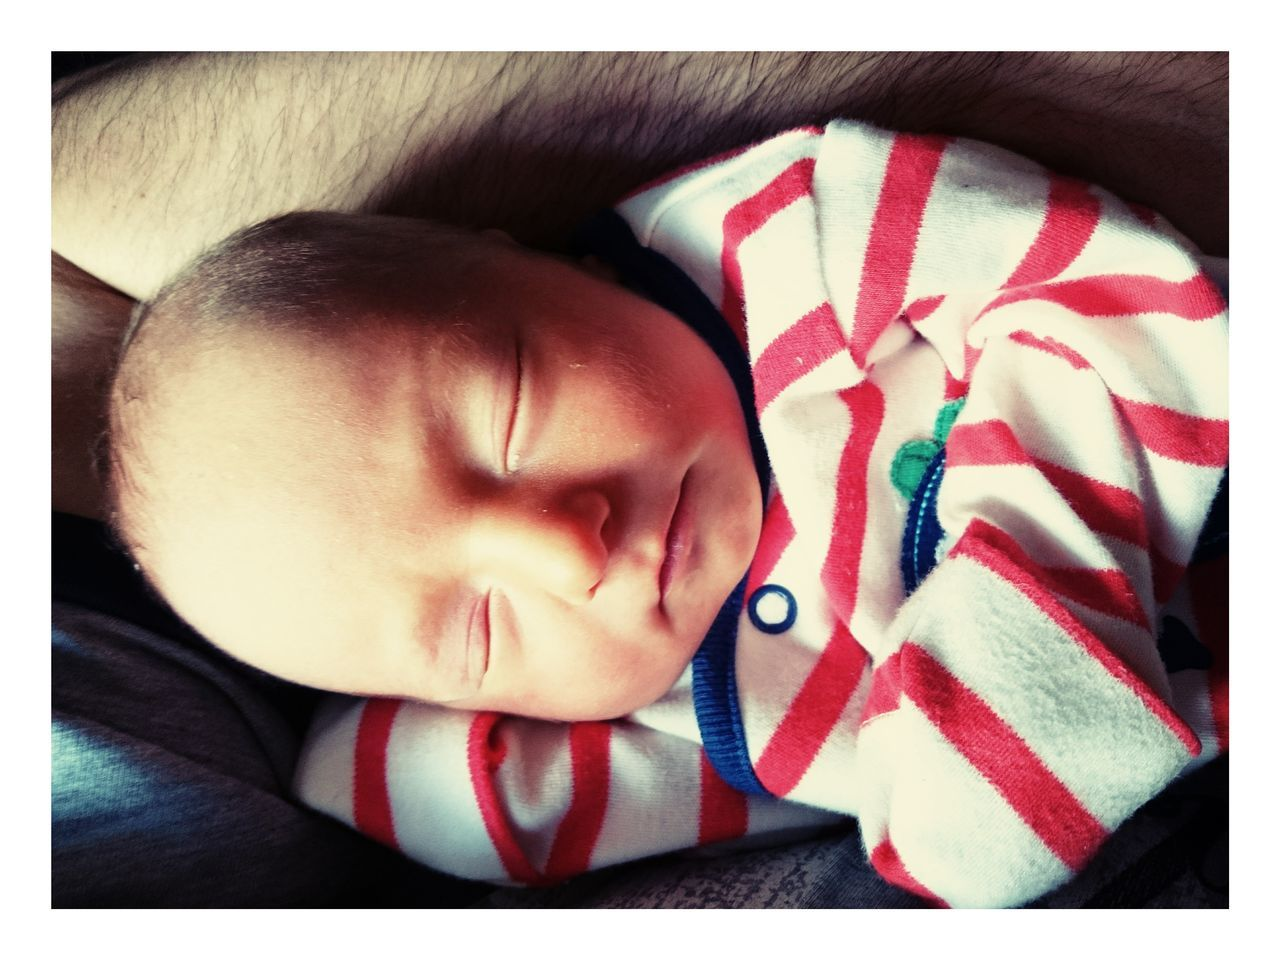 One Person Headshot Human Face Childhood Real People Close-up Day Newborn Baby Babyboy Sleeping Newborn Baby Boy Stripes Pattern